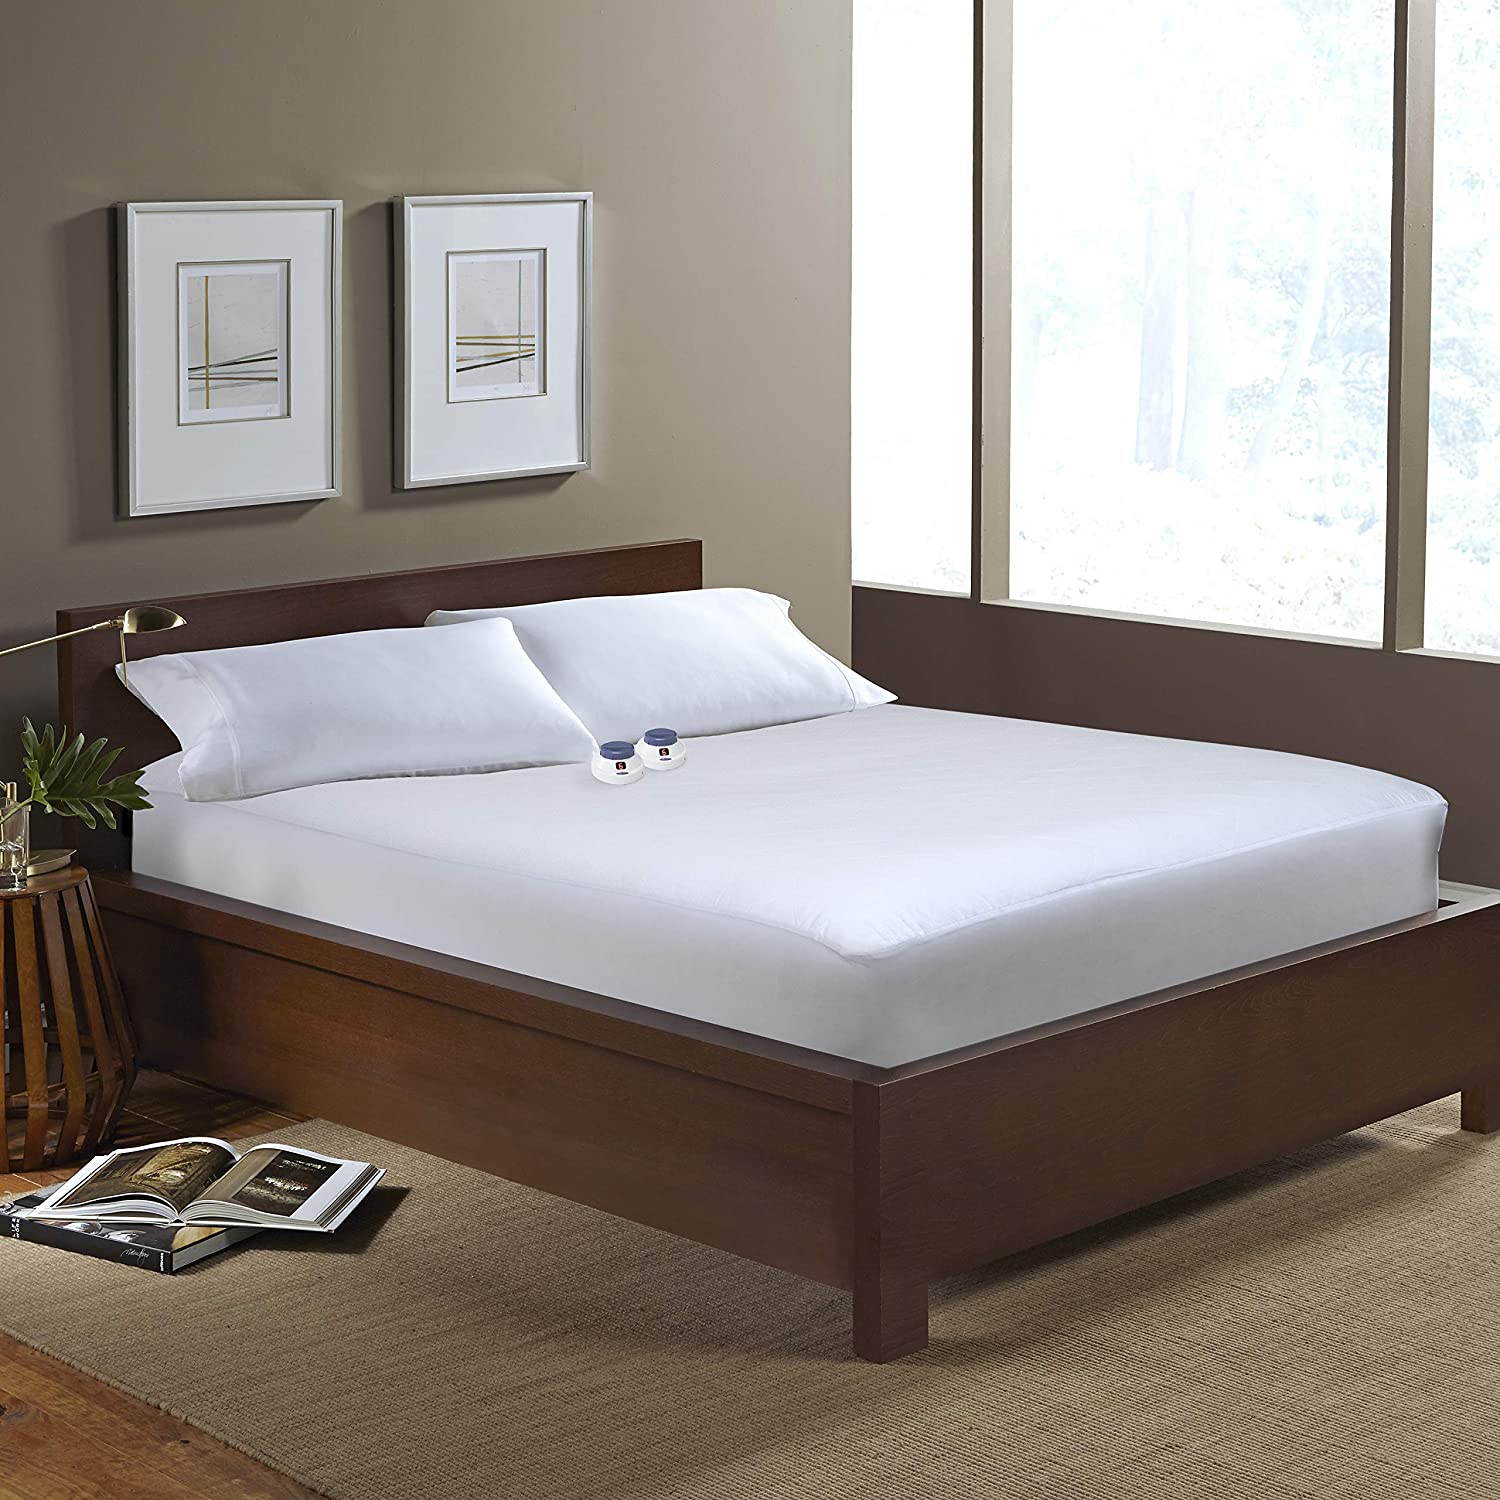 SoftHeat Heated Electric Mattress Pad with Safe & Warm Low Voltage Technology, 250 Thread-Count, King